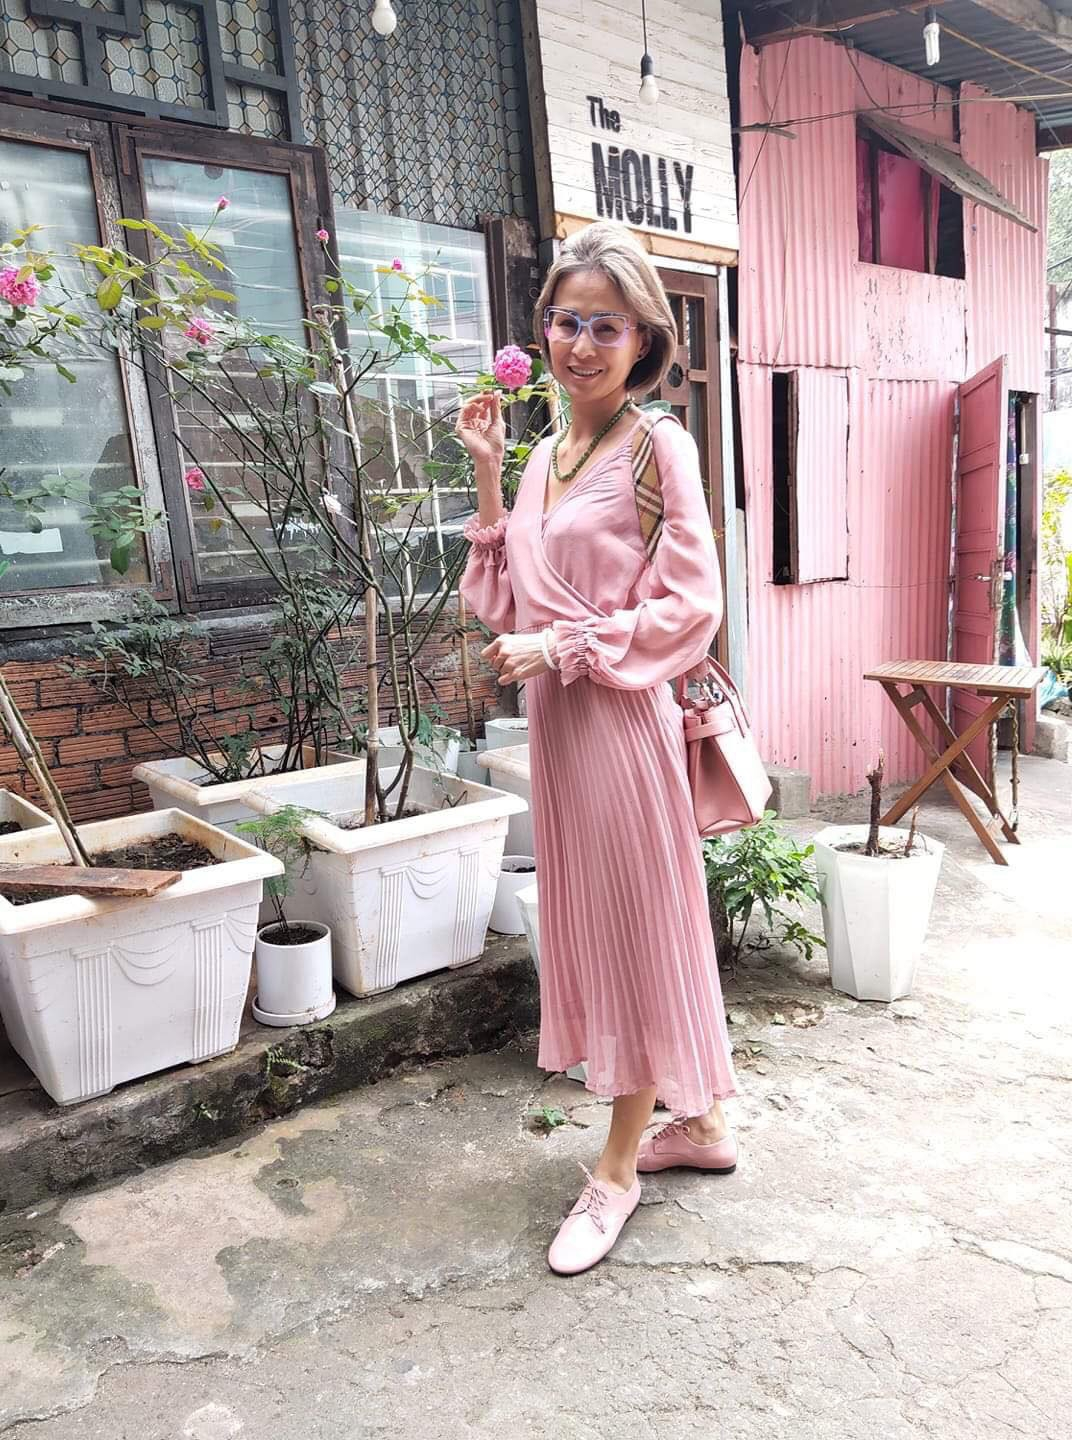 luong hoang anh nguoi tung tin that thiet ve toi co don ly son la ai